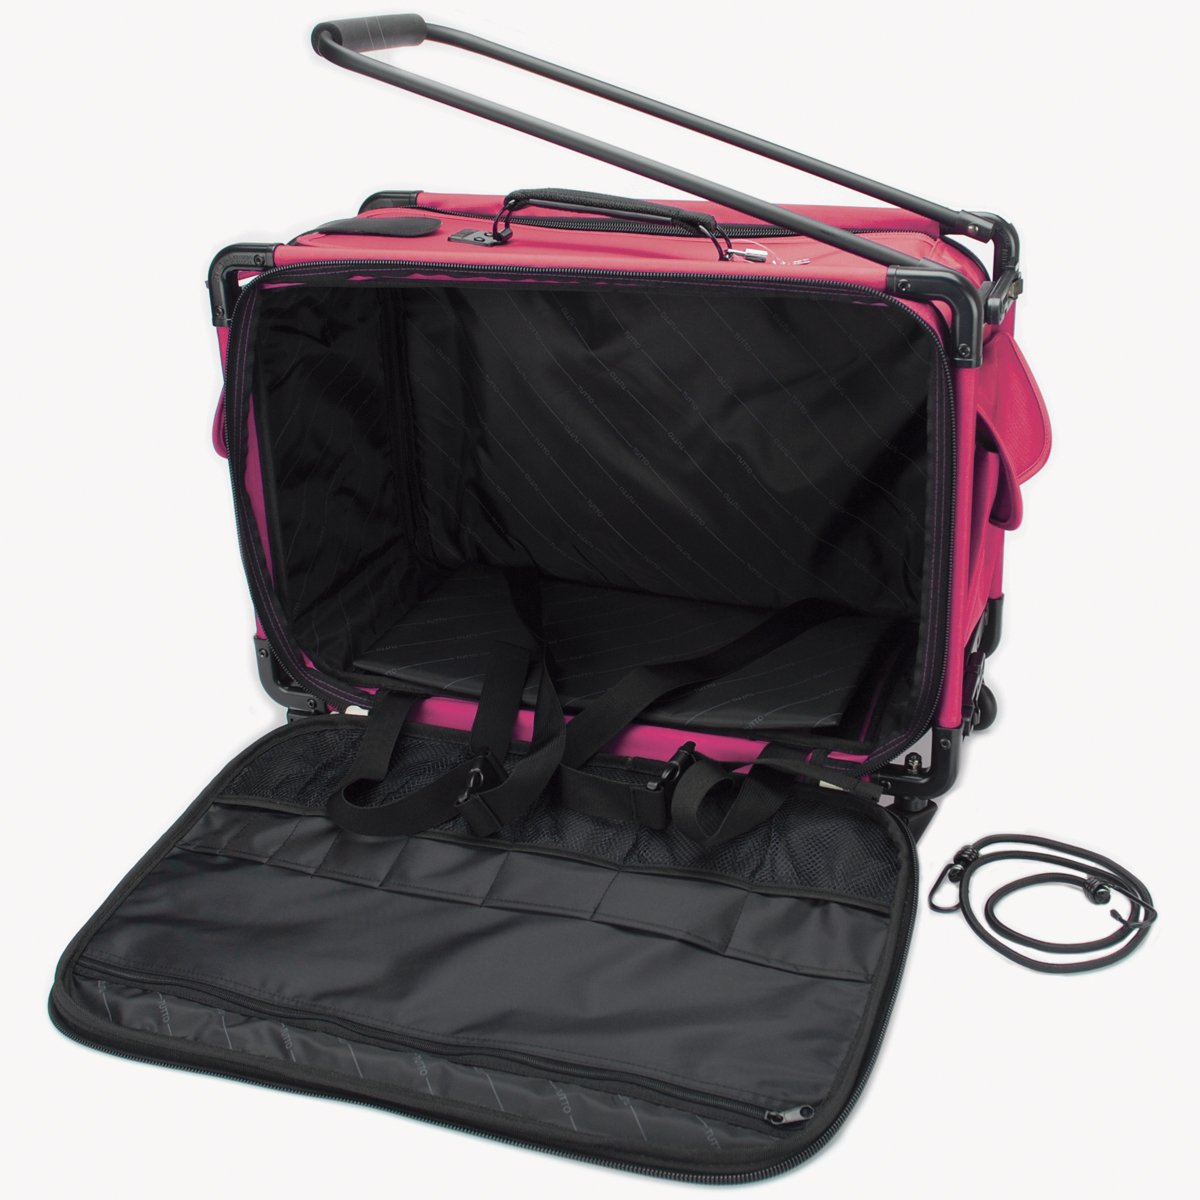 Tutto Machine On Wheels-19L x 13H x 10D Medium Pink 4220MA-M-PINK